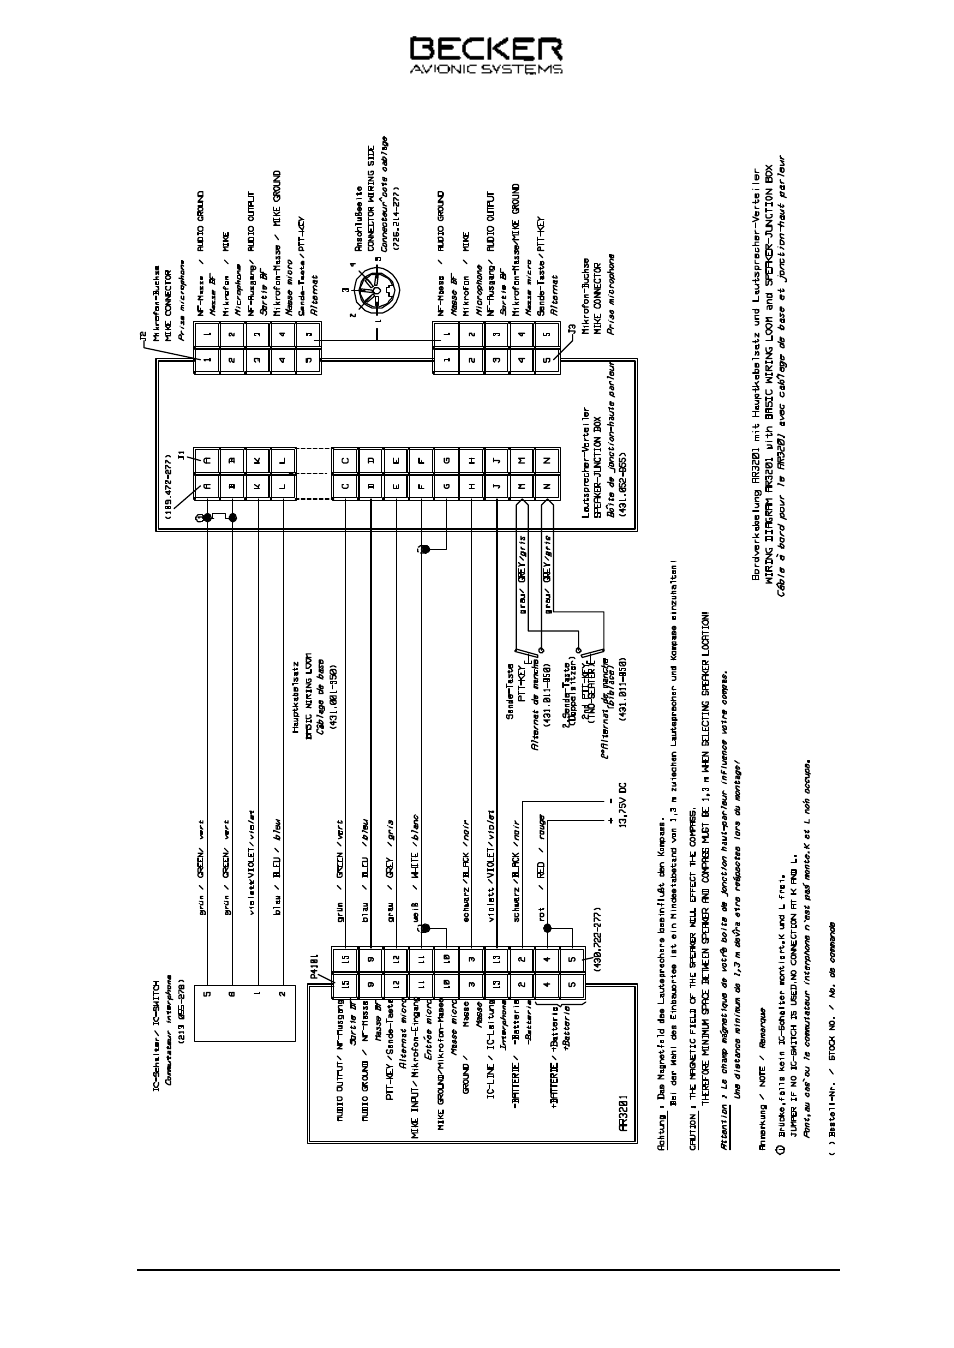 Becker Europa Wiring Diagram